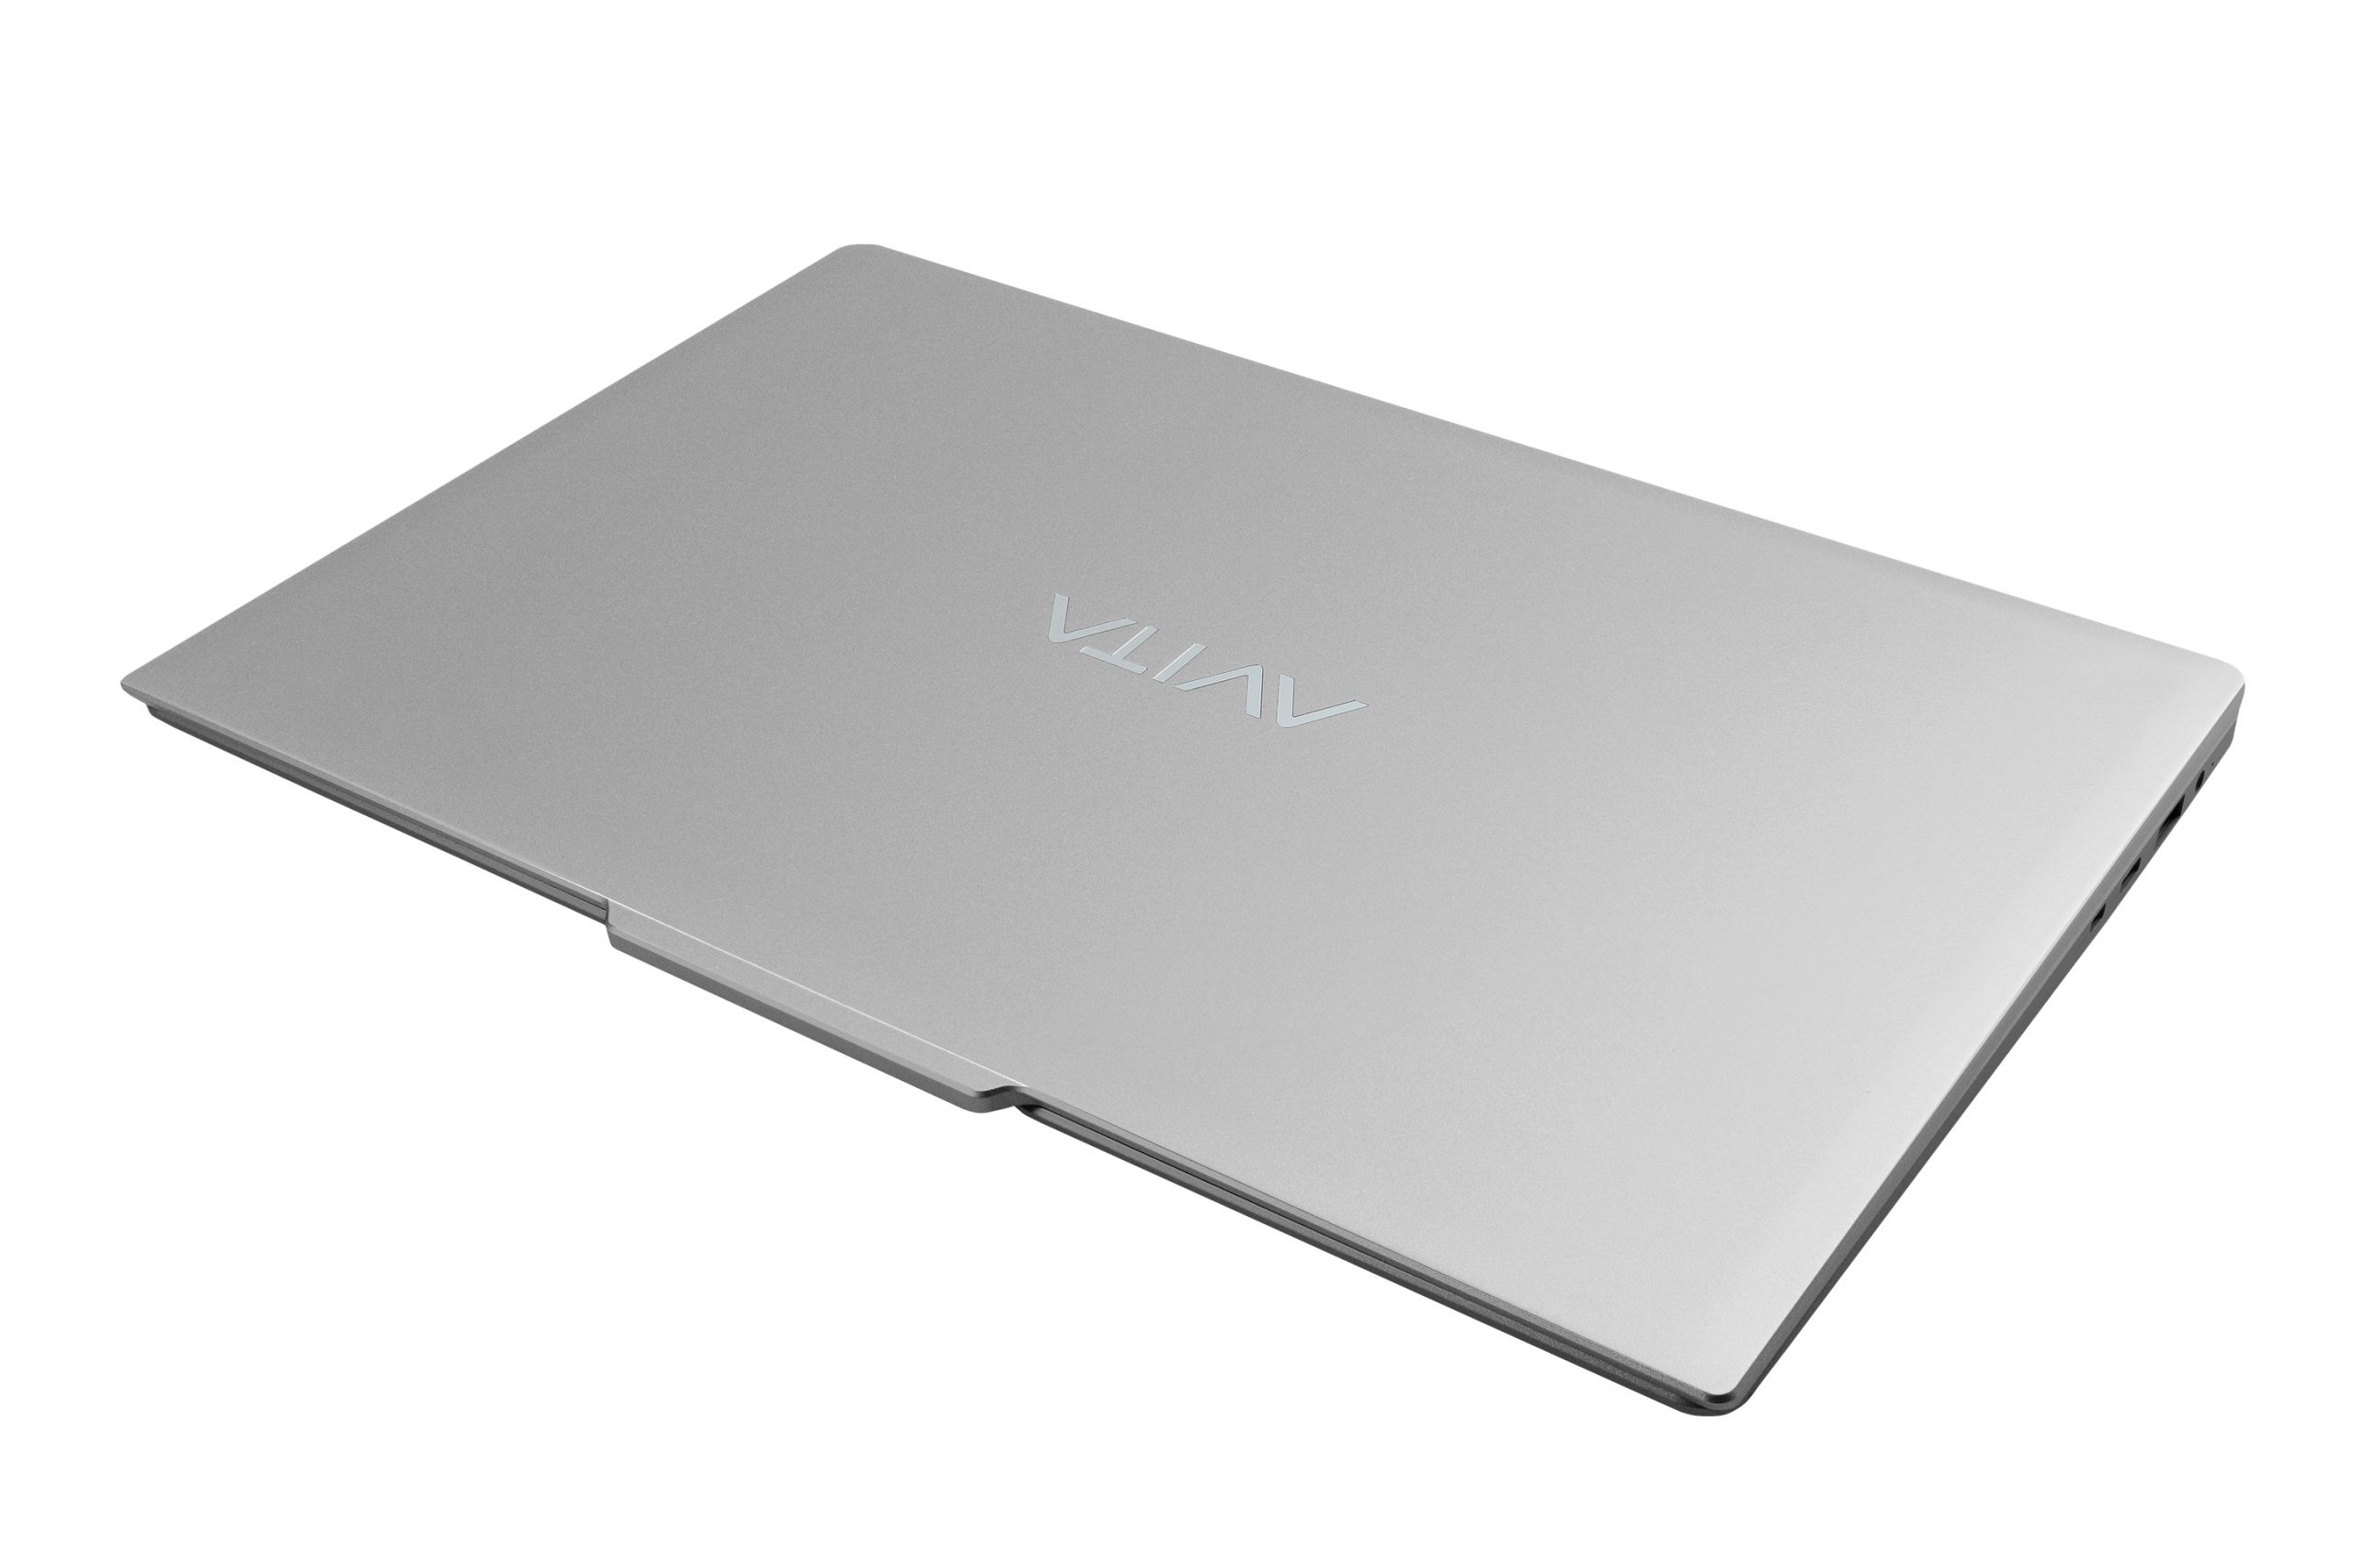 https://t2qwifi.com/wp-content/uploads/2020/07/avita_laptop_2020_angle5_0088_high_space-grey-scaled.jpg